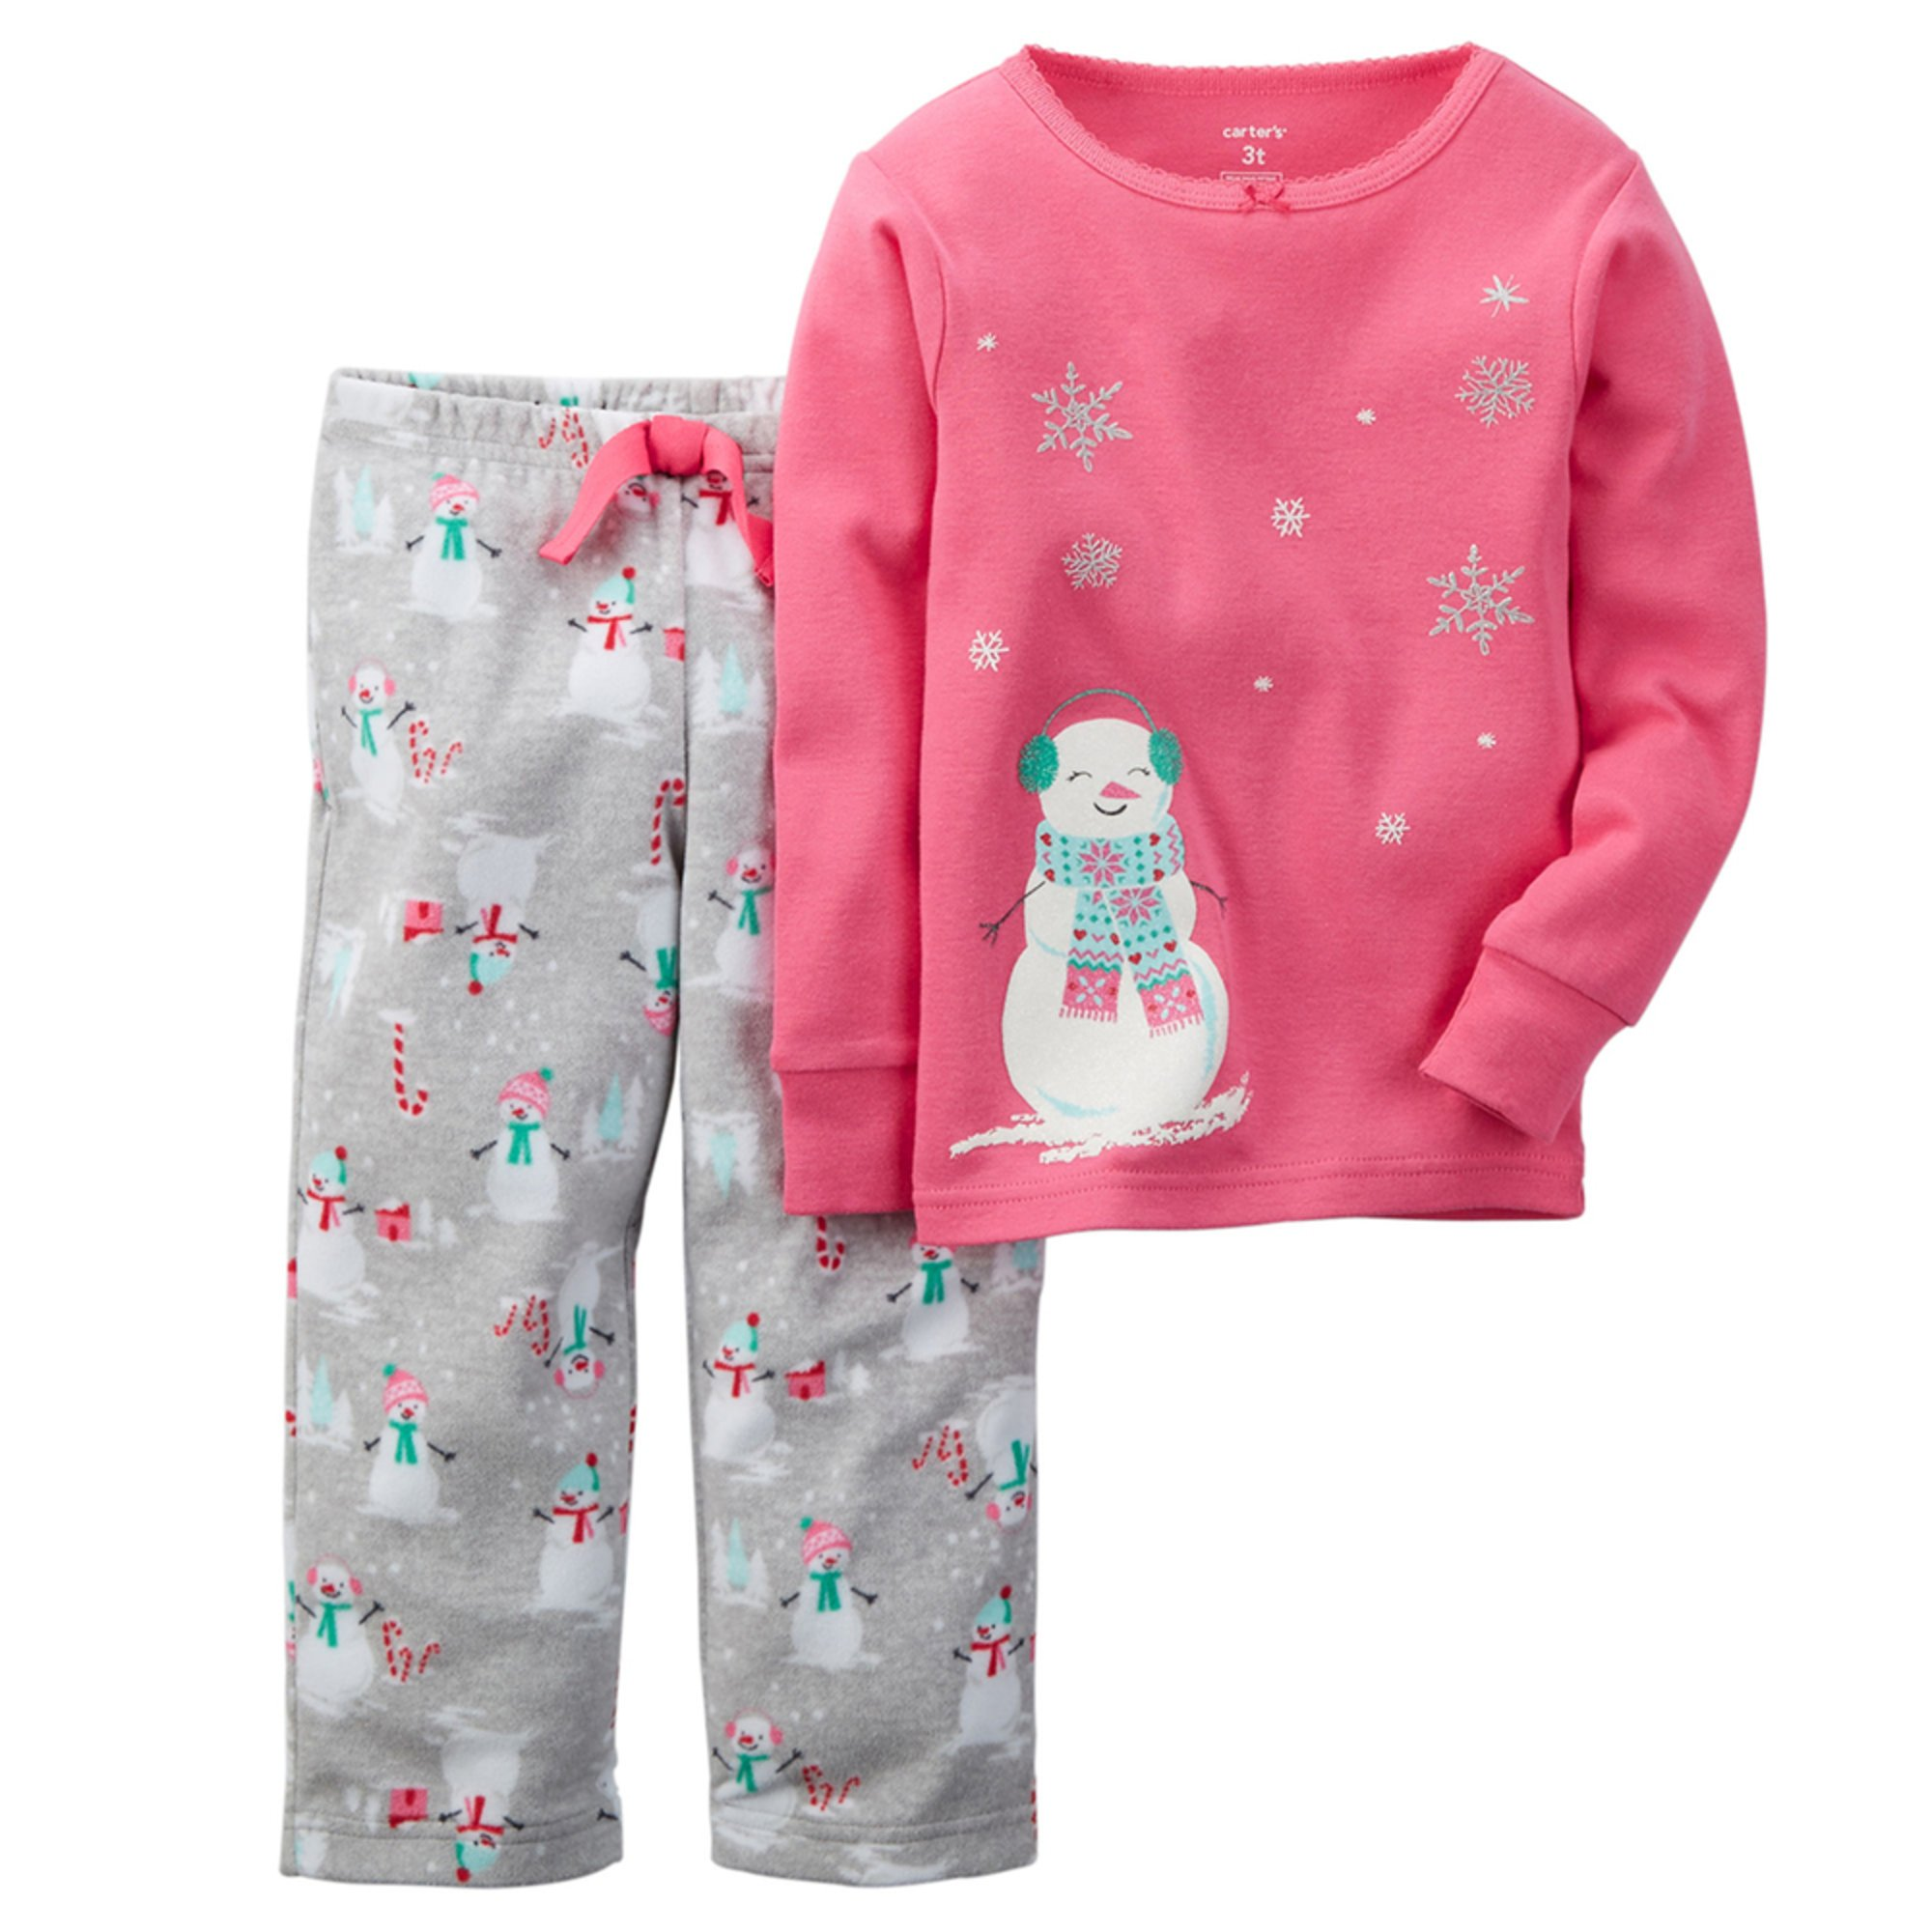 Cuddle her up in our oh-so-soft toddler girl pajamas. Crafted with the softest % organic cotton, Hanna toddler girl sleepwear is perfect for story time, cozy bedtimes and long lazy mornings.